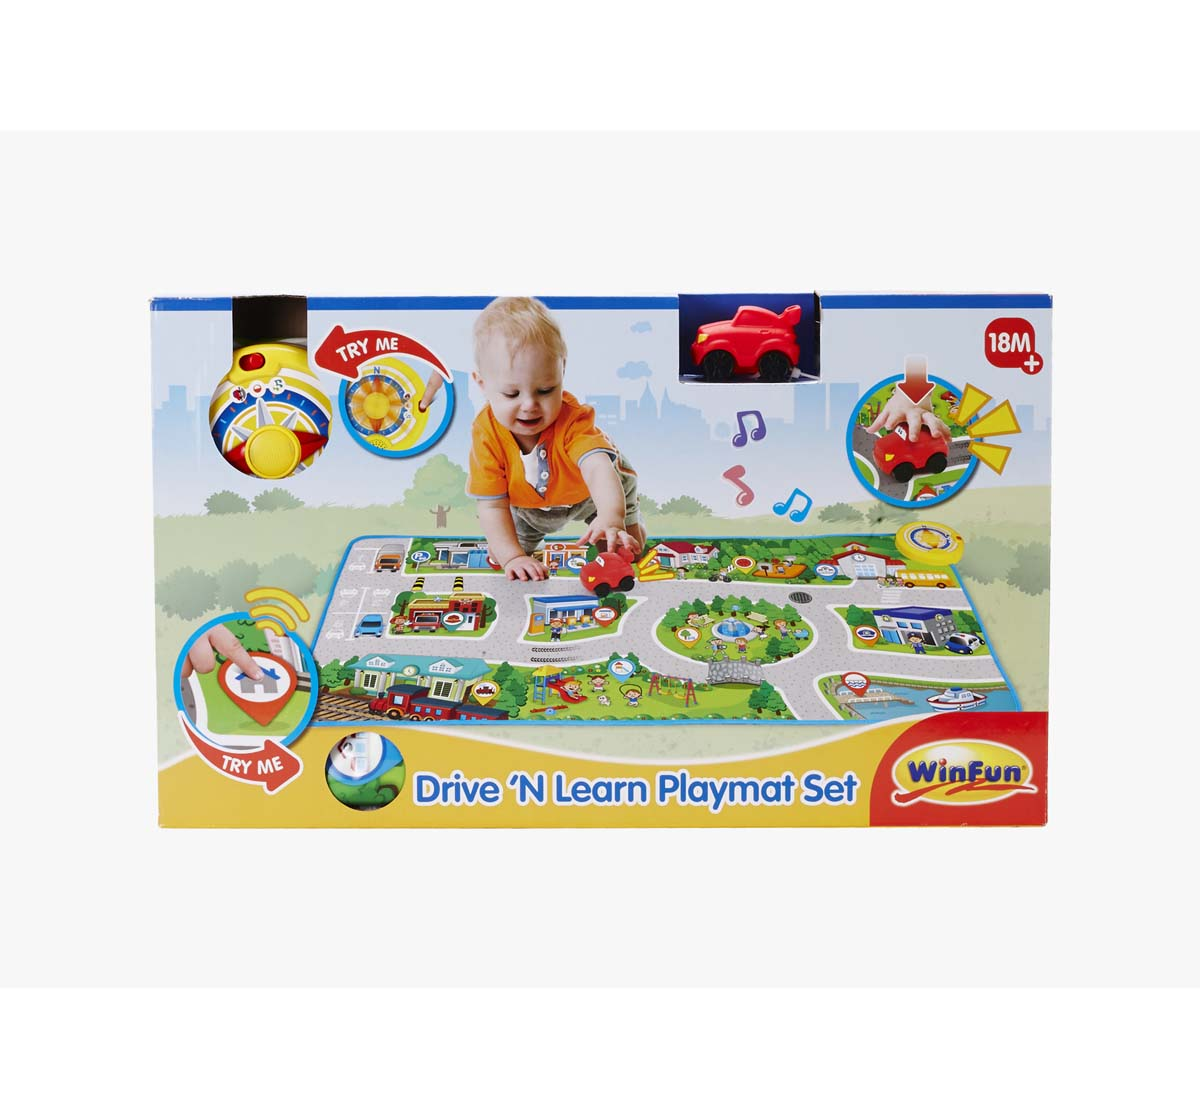 WinFun | Winfun Drive N Learn Playmat Learning Set Toys for Kids age 18M +